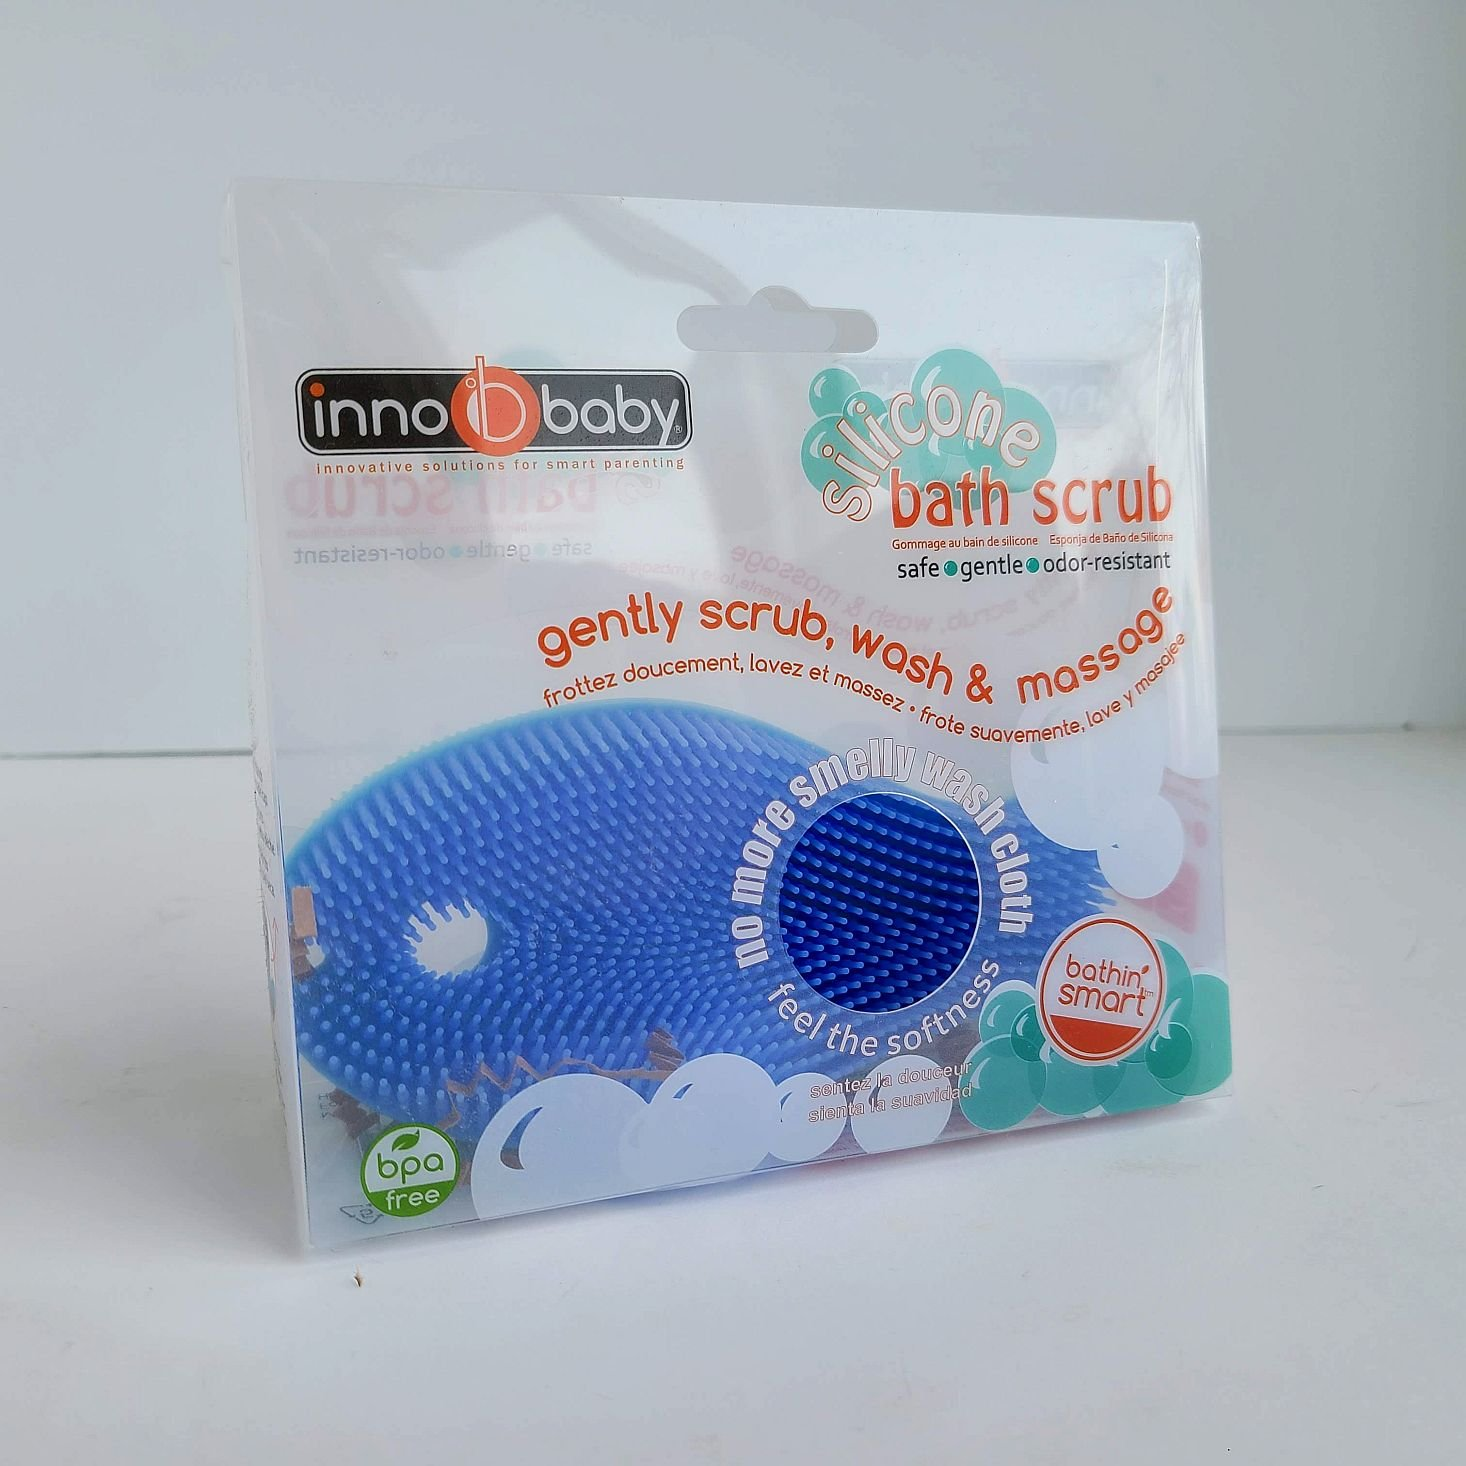 Ecocentric Moms Box Bath scrubber packaging